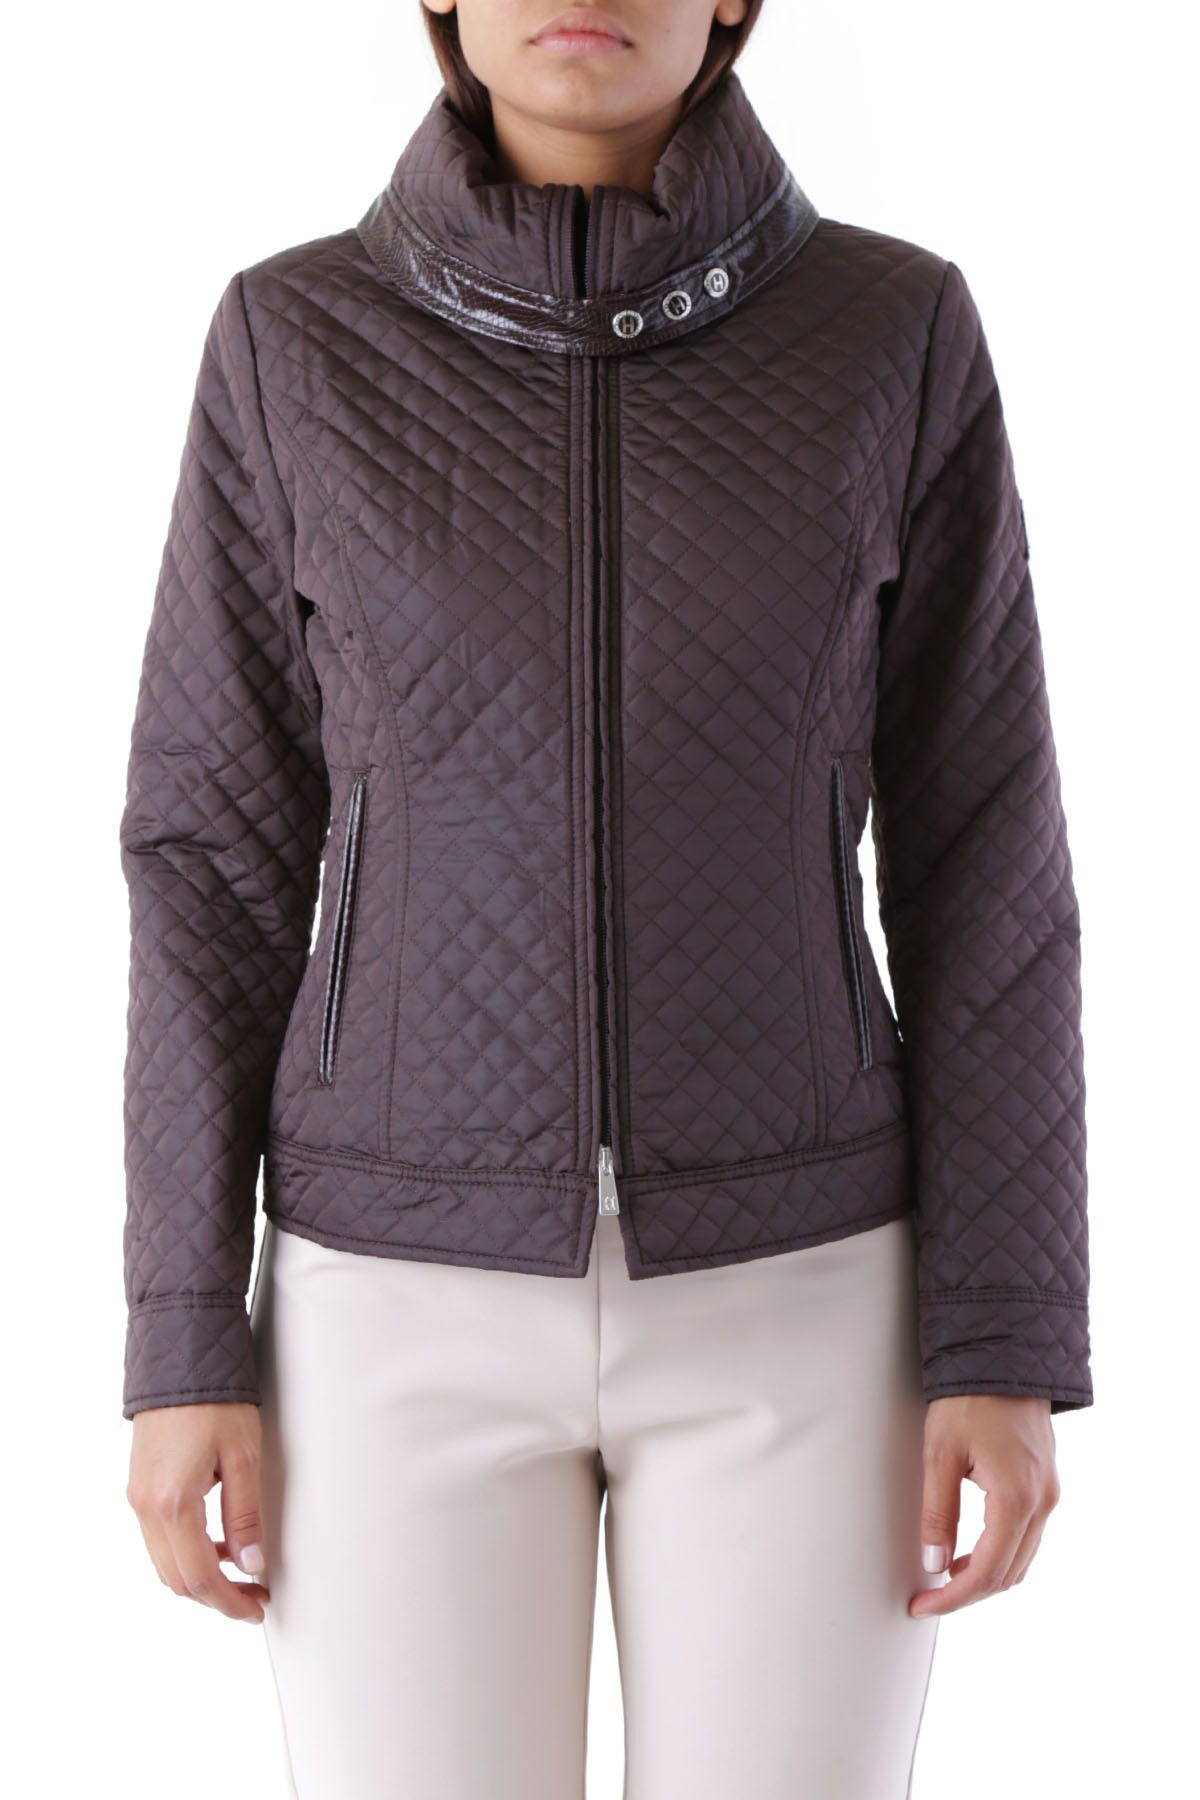 Husky Women's Jacket In Brown